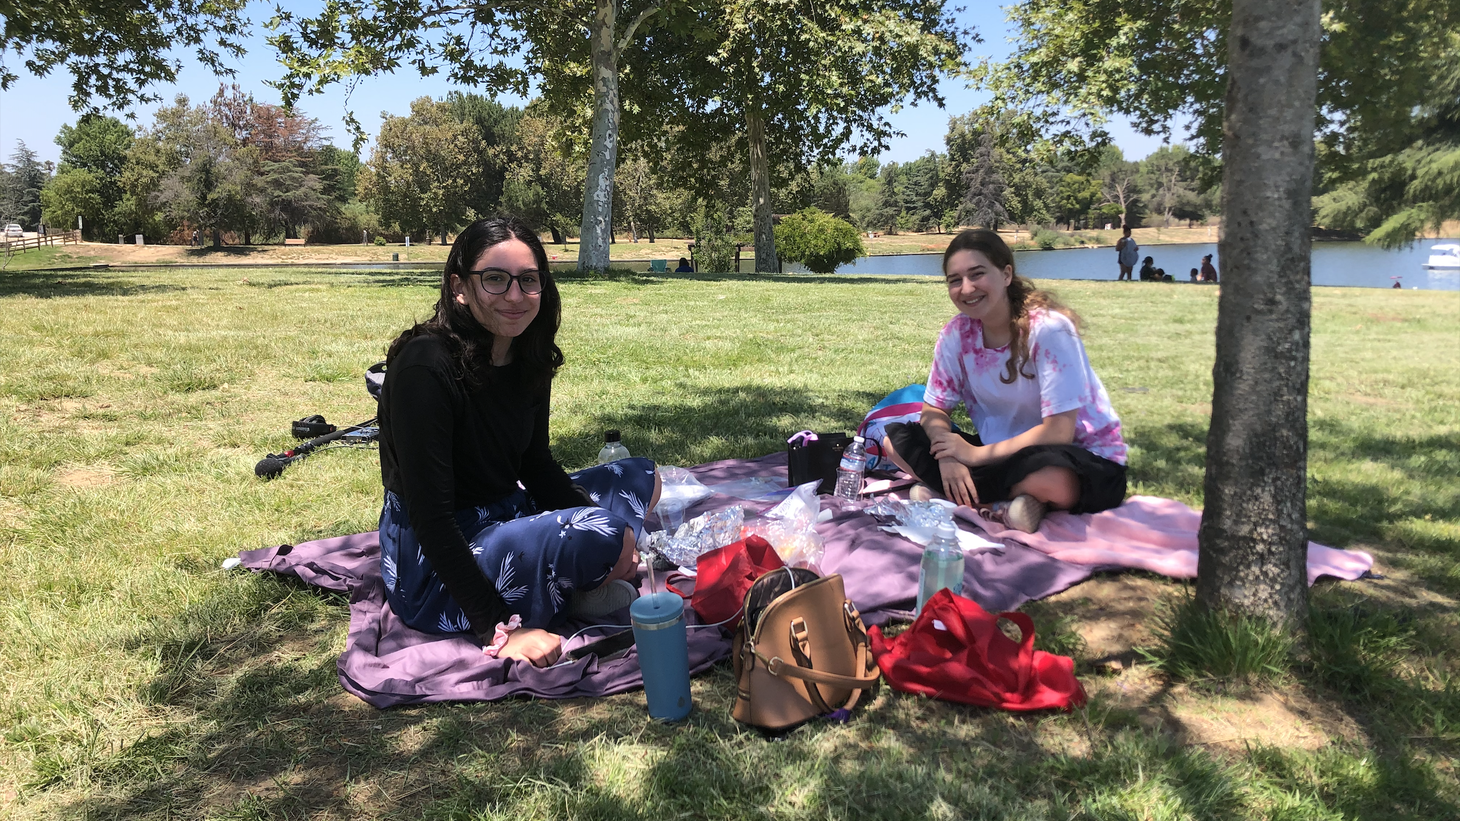 Maya Shternberg and Mayan Benhamo stay six feet apart during their outdoor picnic.